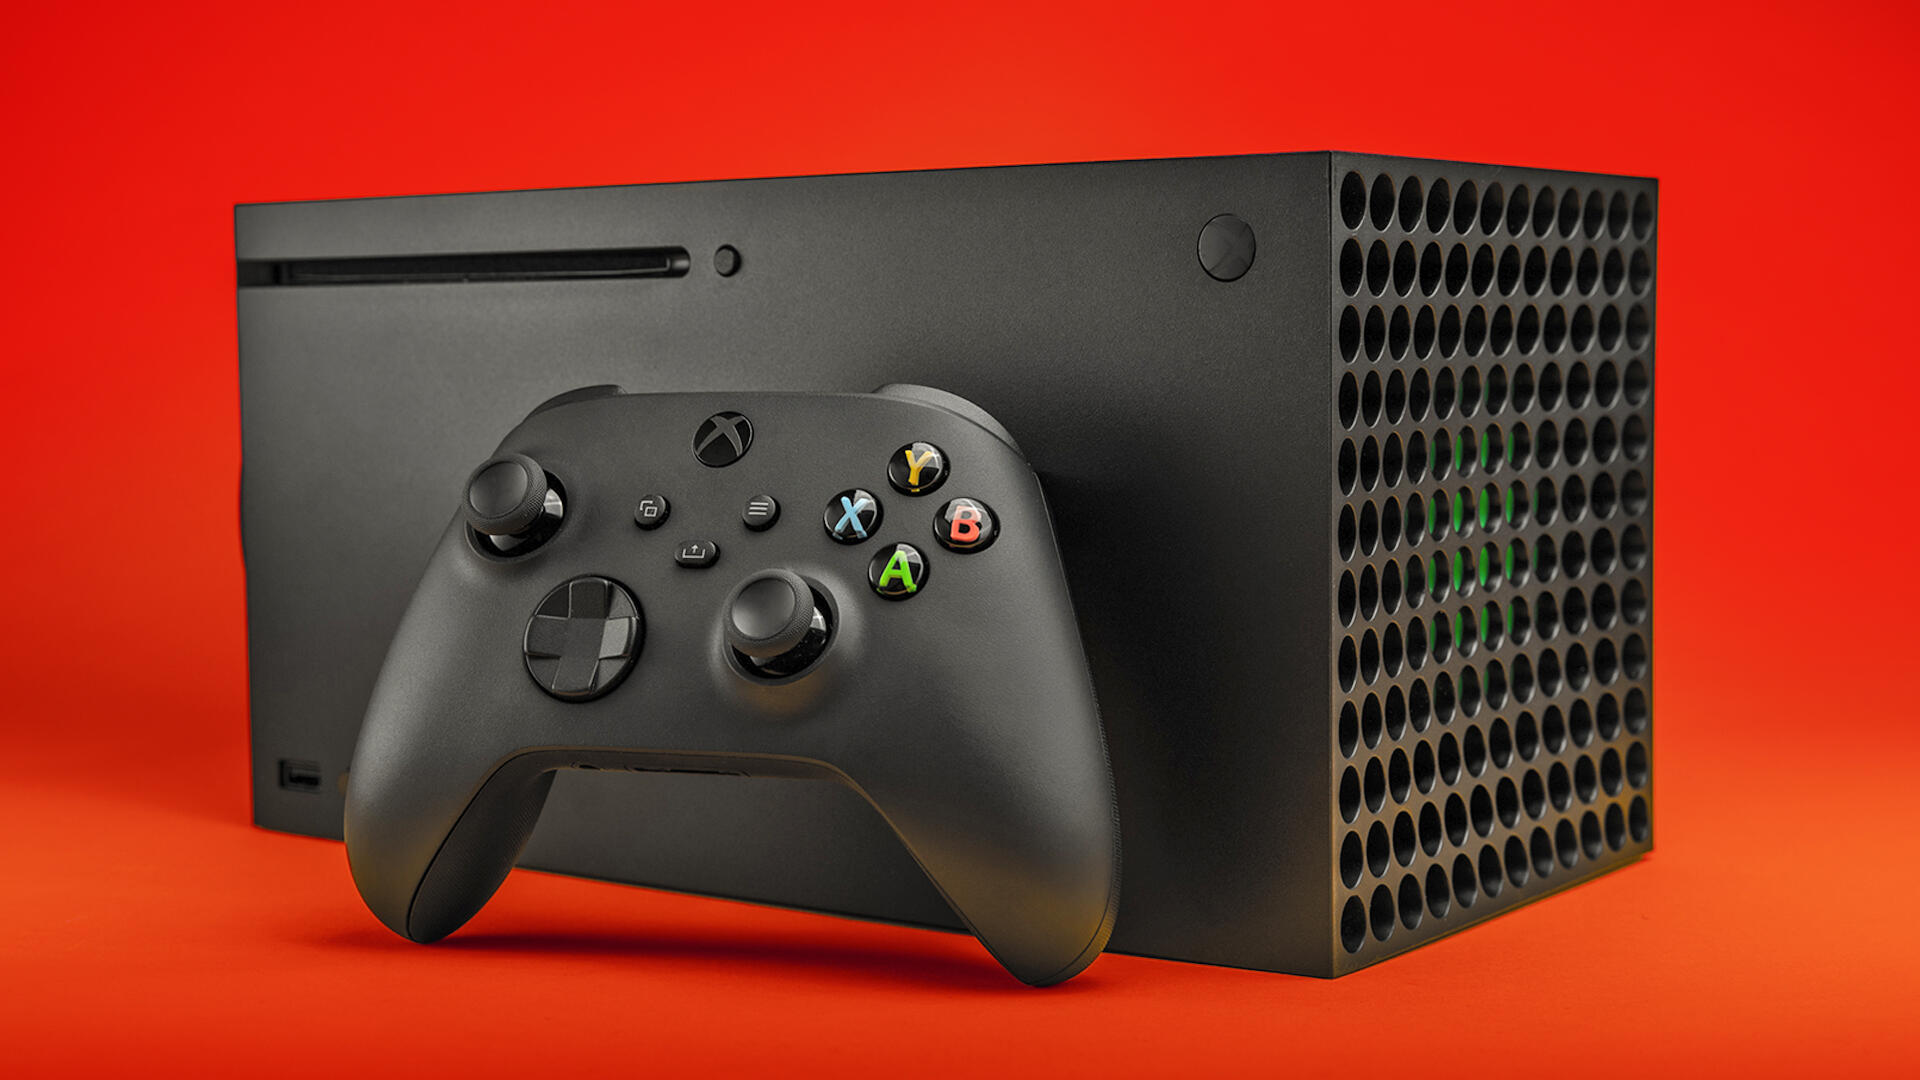 Ahead of E3, Microsoft aims to bring Xbox to billions of players with or without consoles - CNET